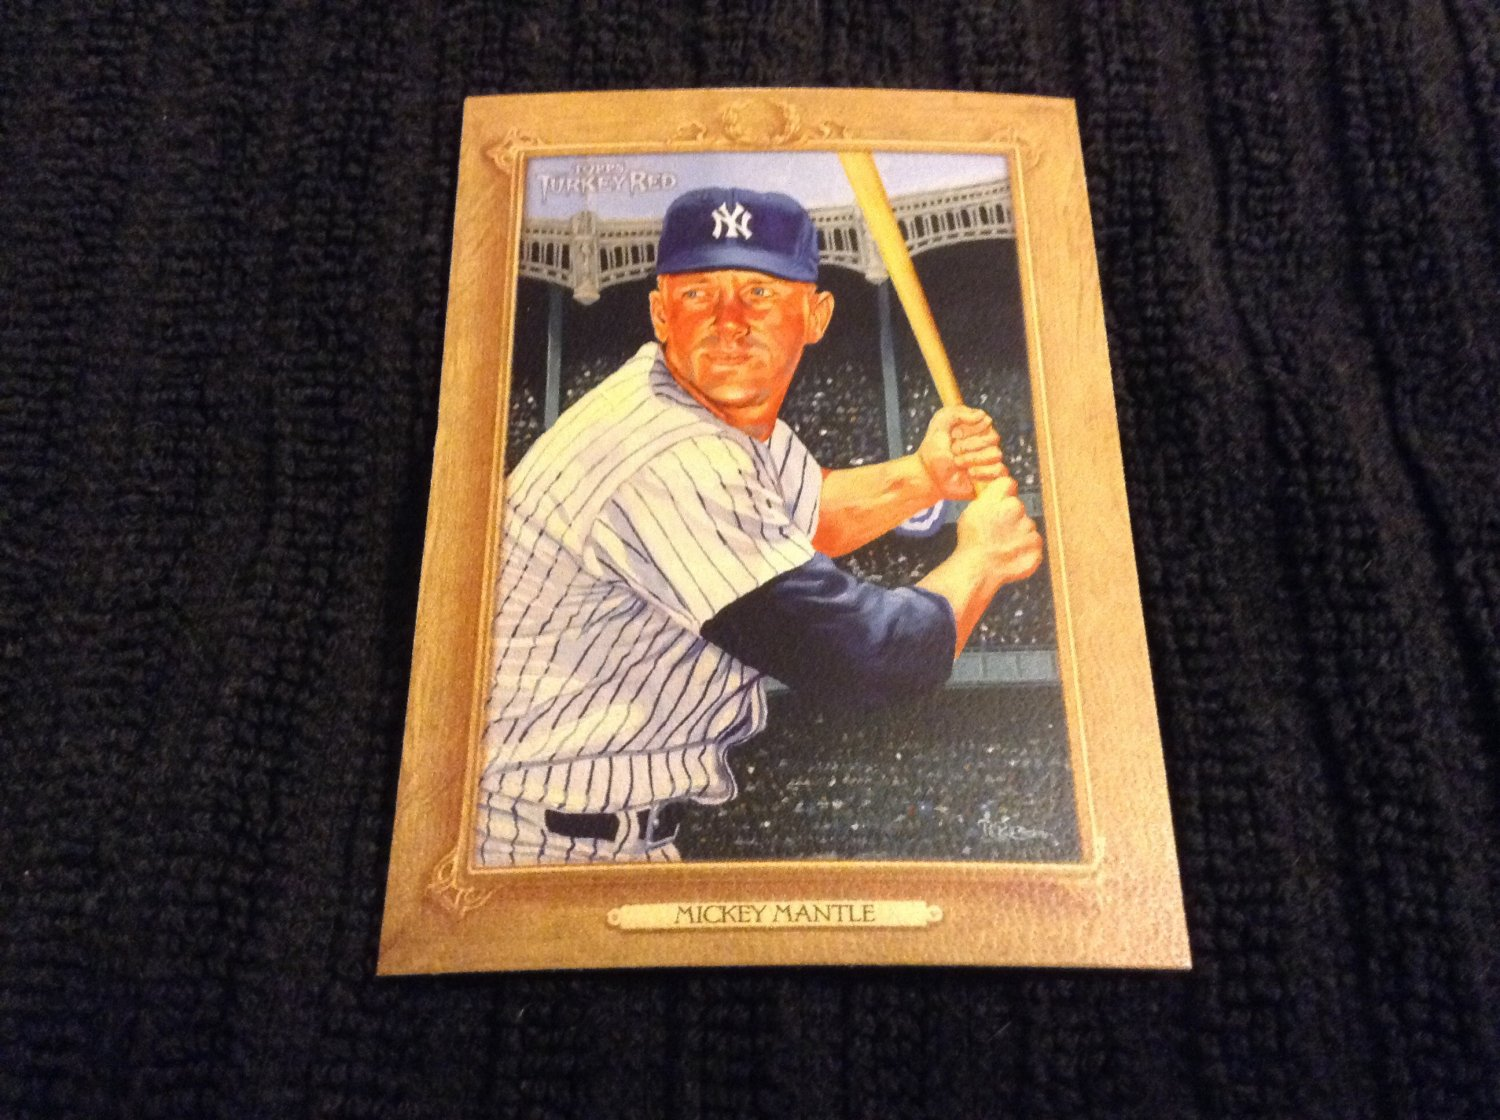 2007 Topps Turkey Red - Mickey Mantle (167)